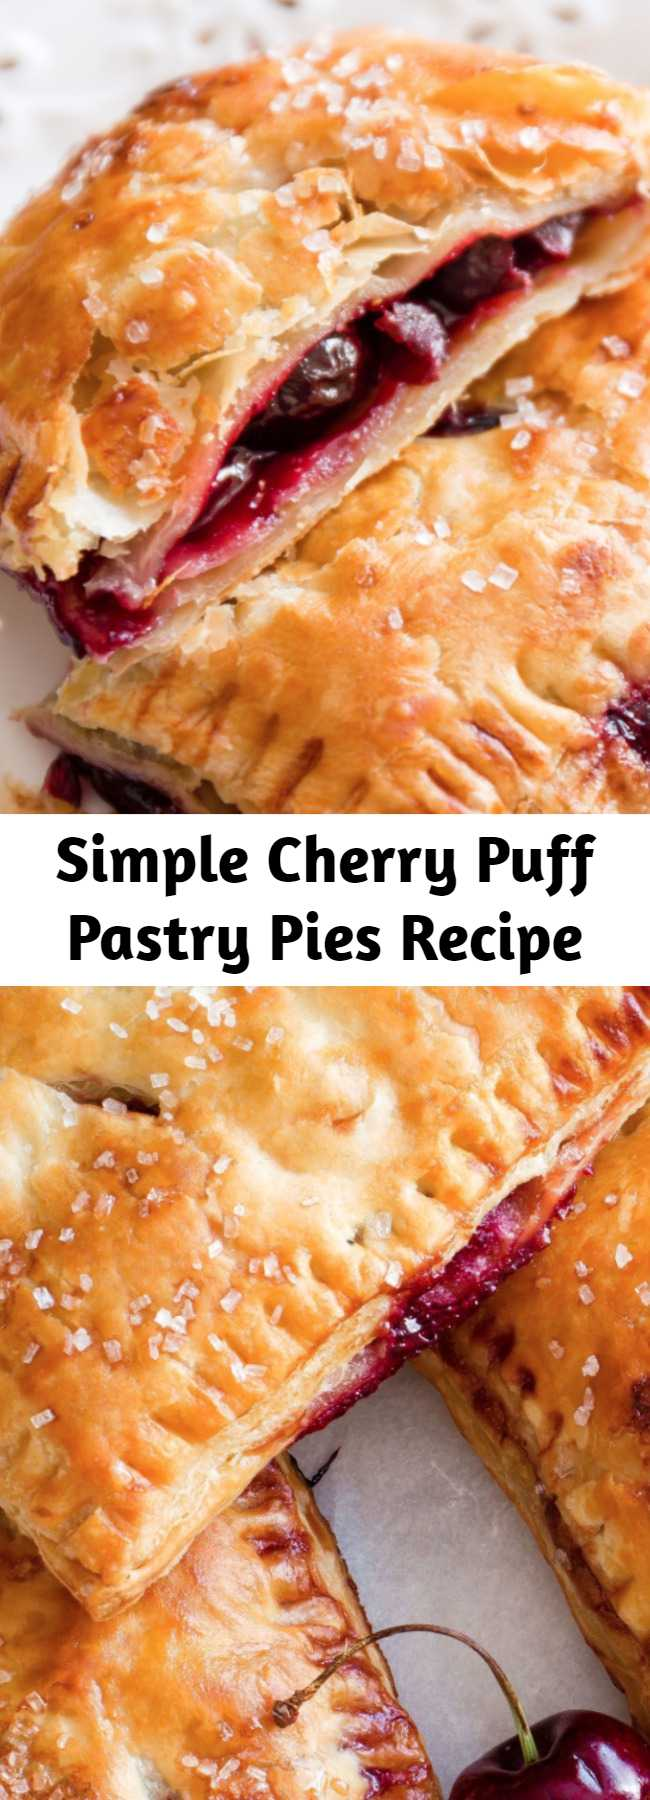 Simple Cherry Puff Pastry Pies Recipe